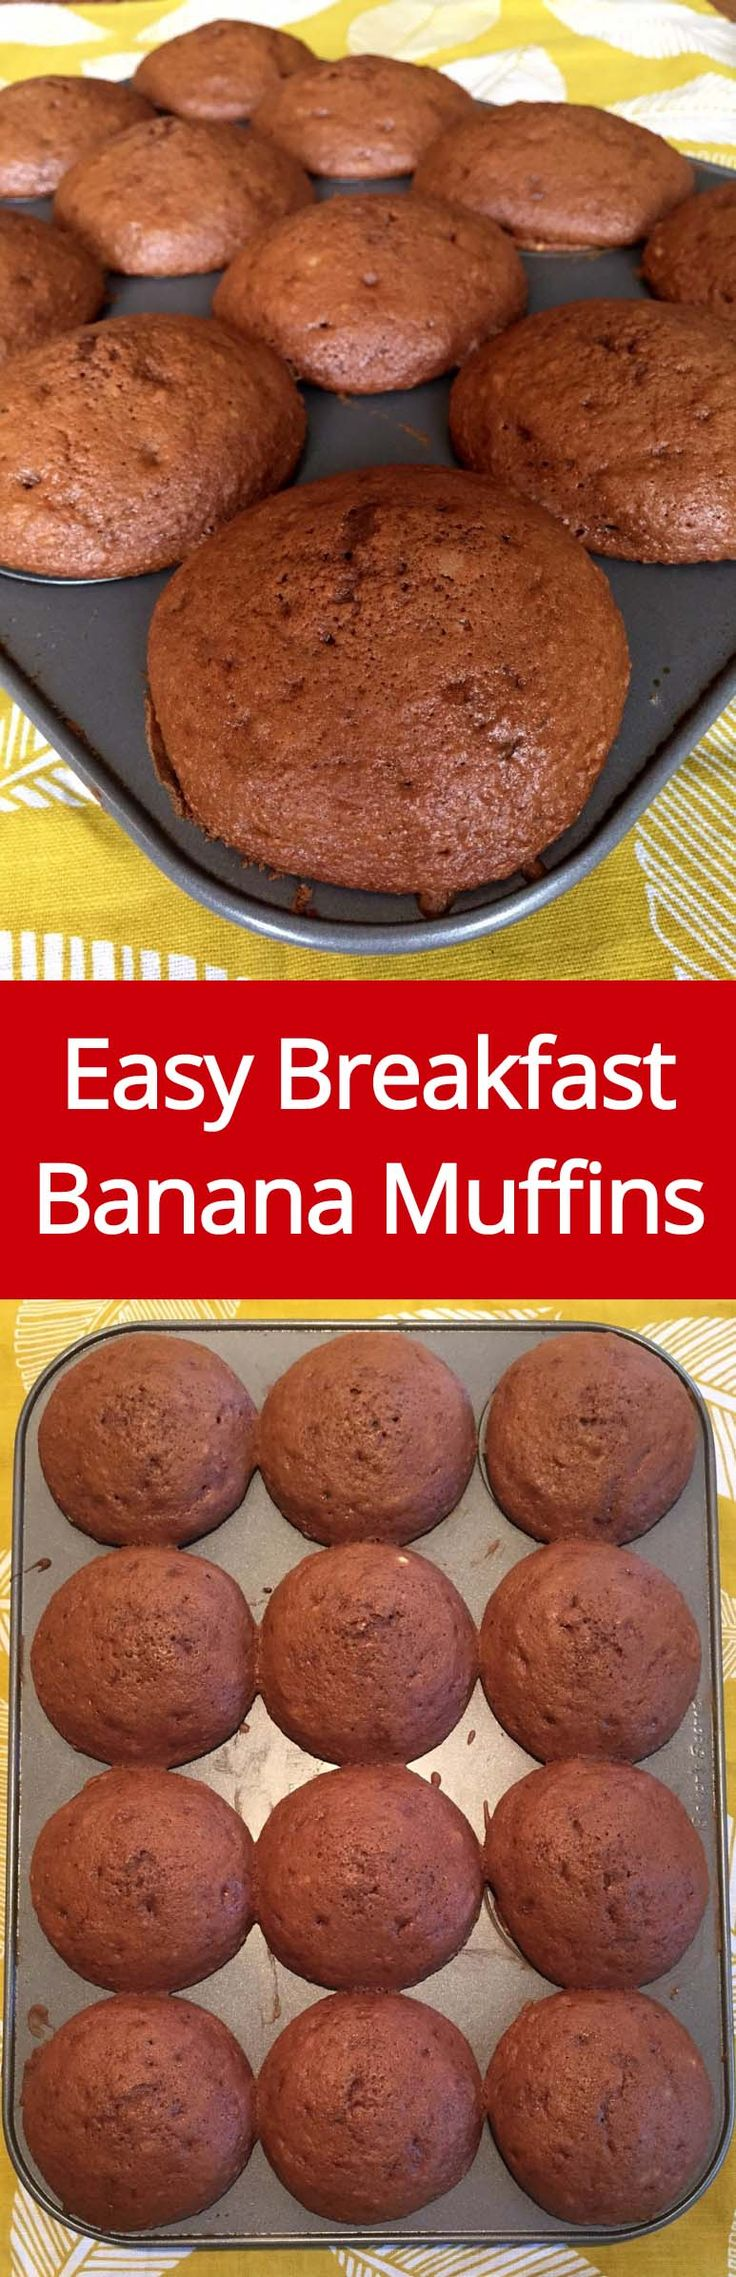 Easy Banana Muffins - these huge muffins are like banana bread in a muffin form!  Perfect for breakfast!   MelanieCooks.com